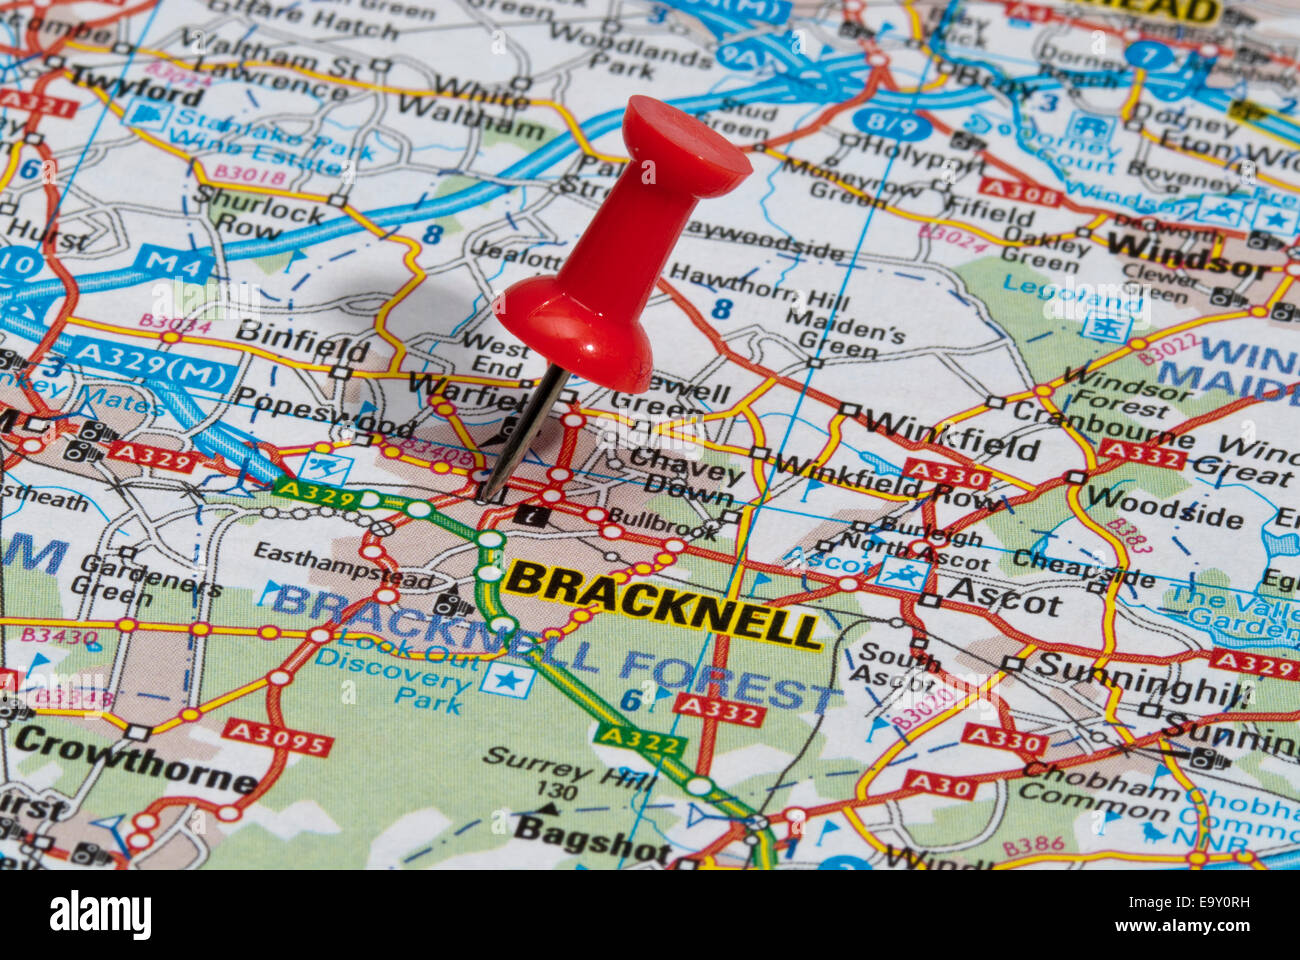 red map pin in road map pointing to city of Bracknell Stock Photo